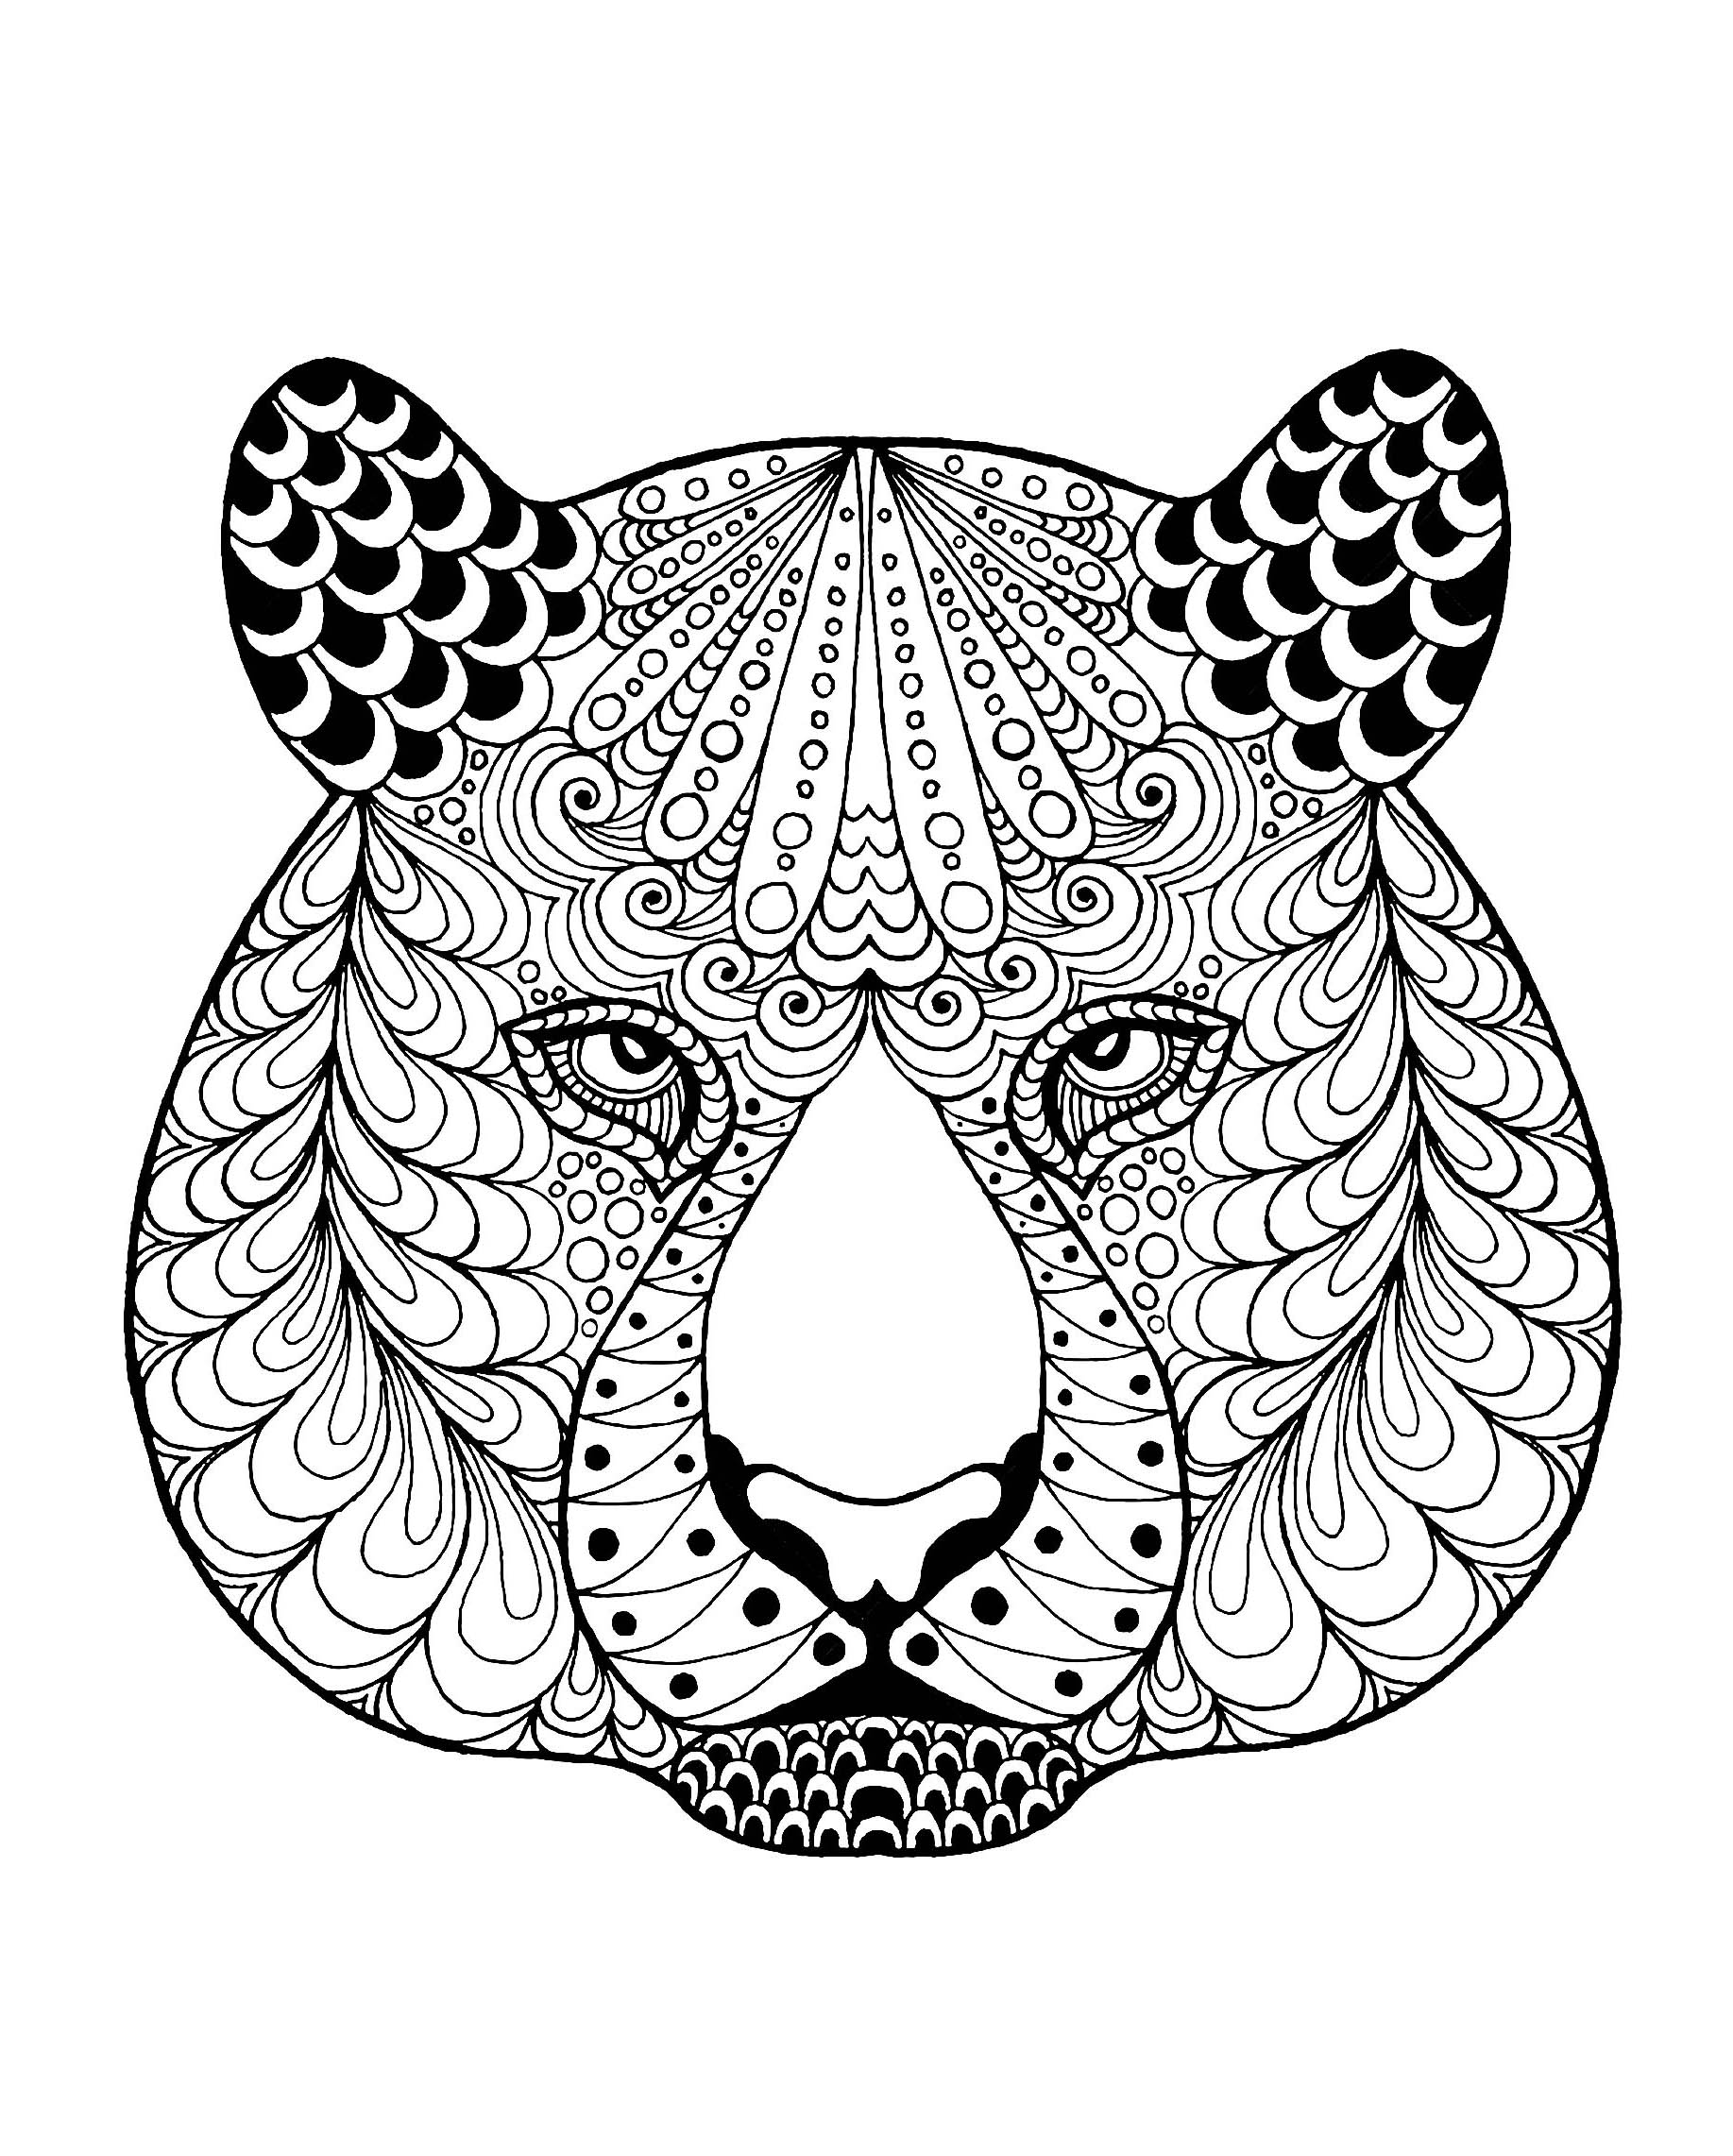 tiger printable coloring pages tiger coloring pages kidsuki coloring tiger printable pages